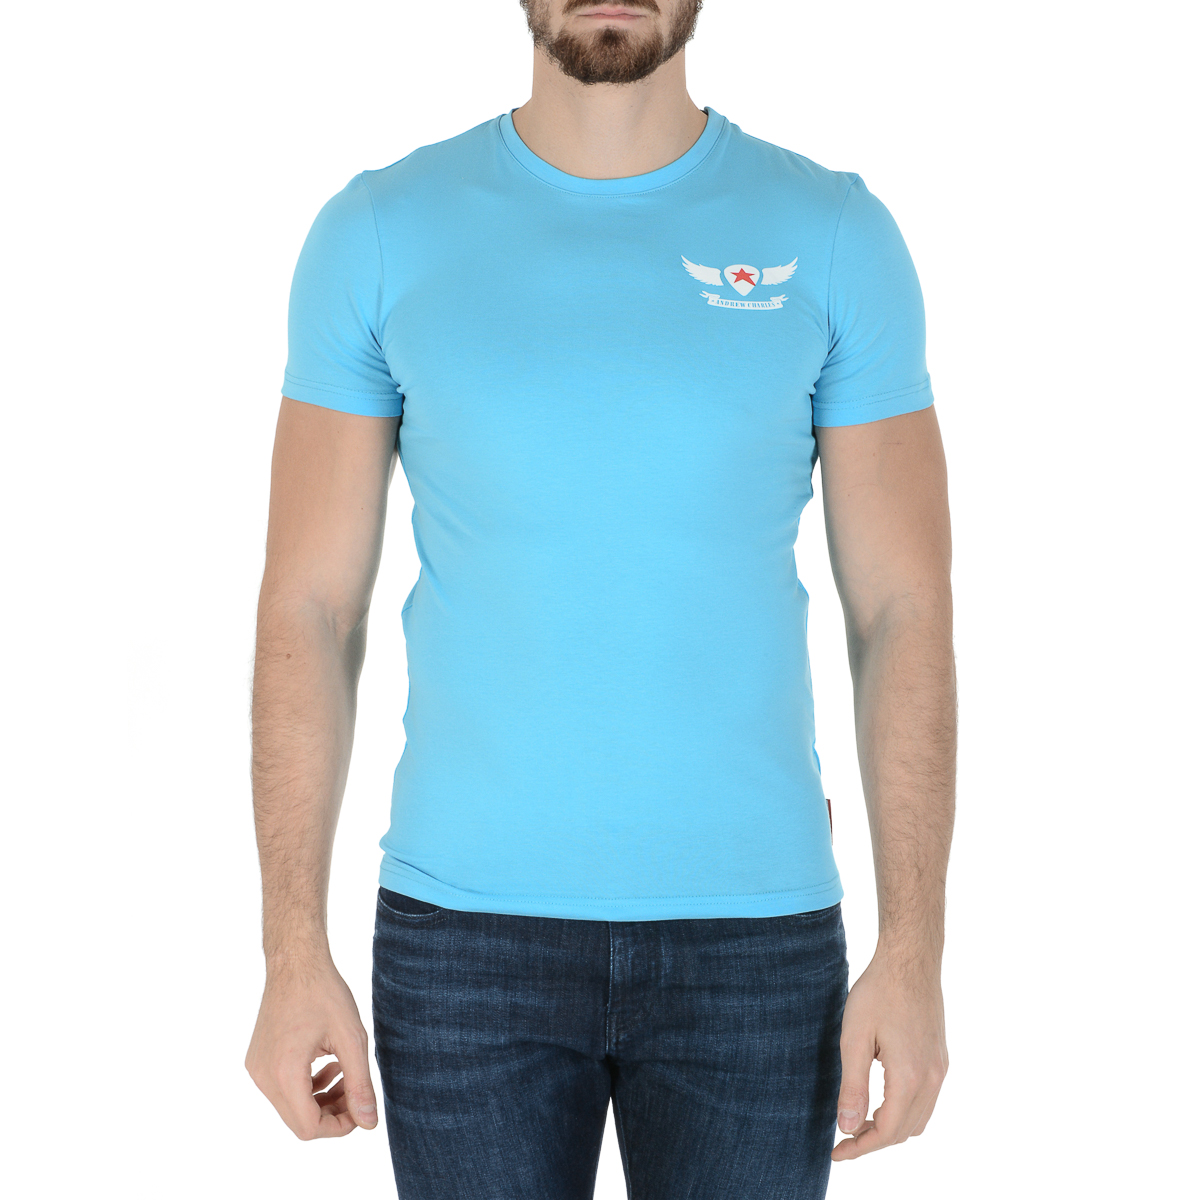 Primary image for Andrew Charles Mens T-Shirt Short Sleeves Round Neck Light Blue KEITA